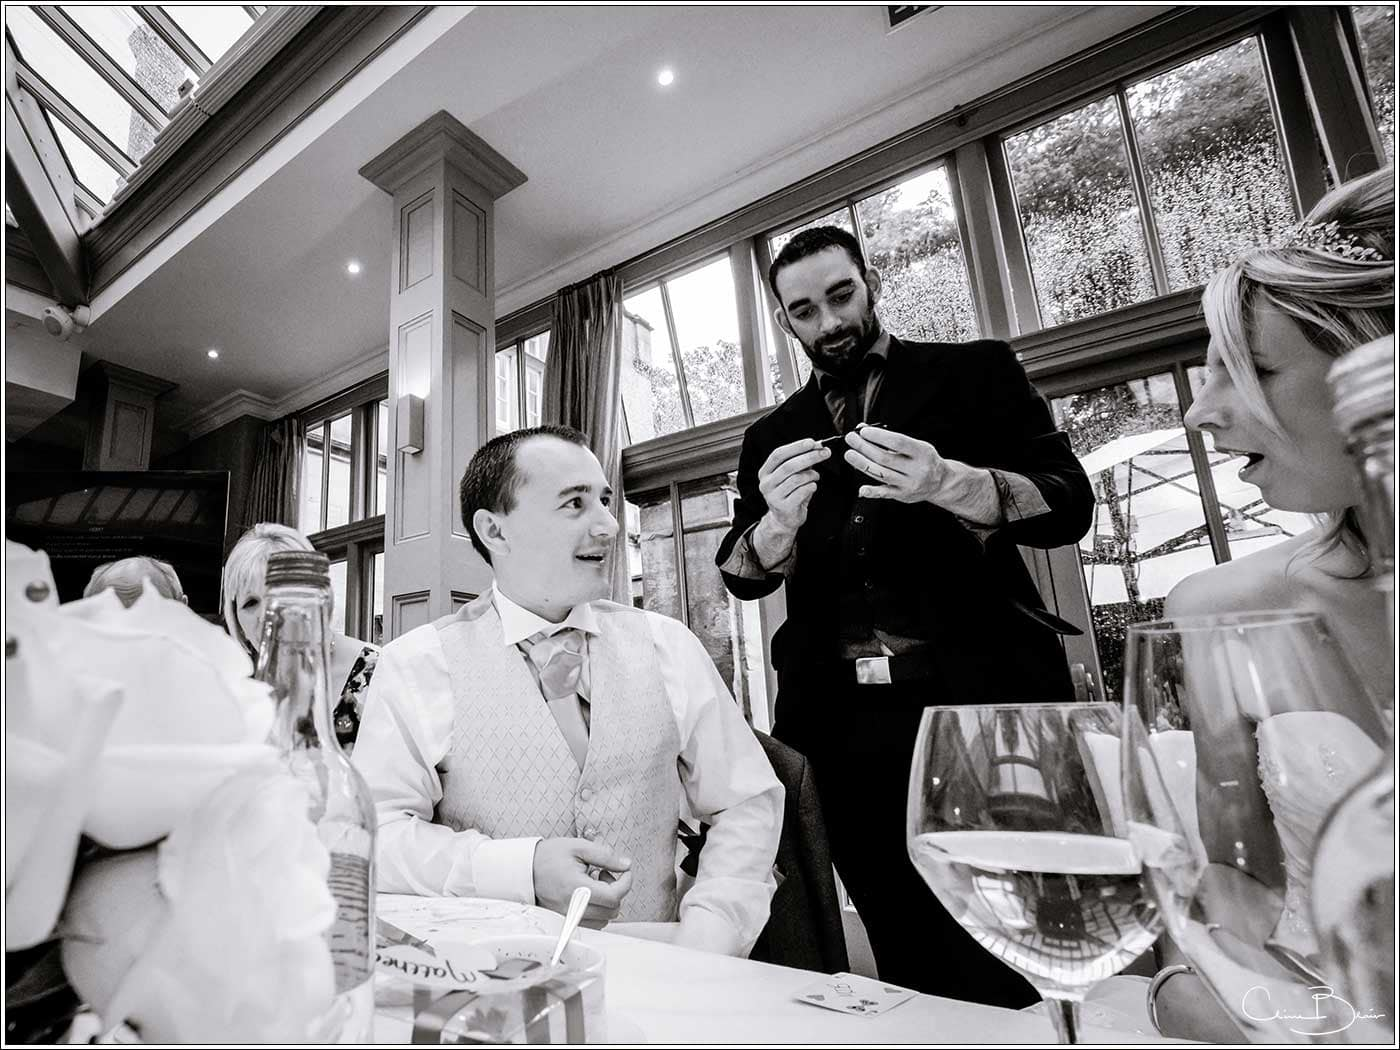 Jester Styles working the tables at a wedding-by Hampton manor wedding photographer Clive Blair Photography